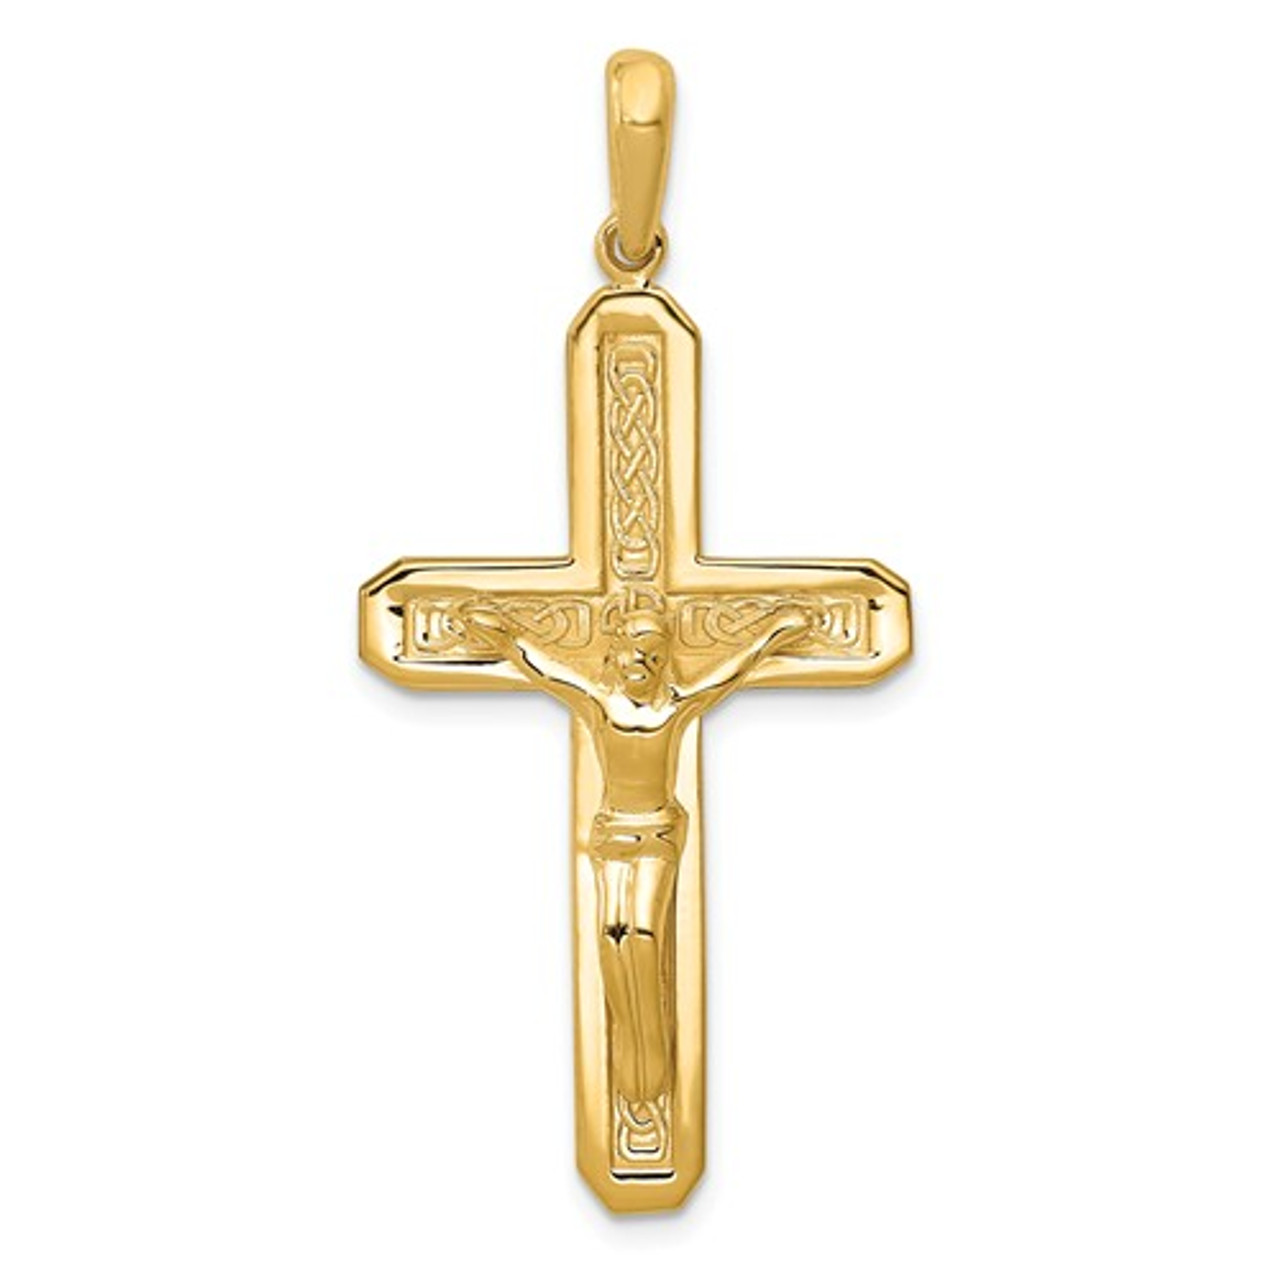 JewelsObsession Sterling Silver 48mm Crucifix Charm w//Lobster Clasp